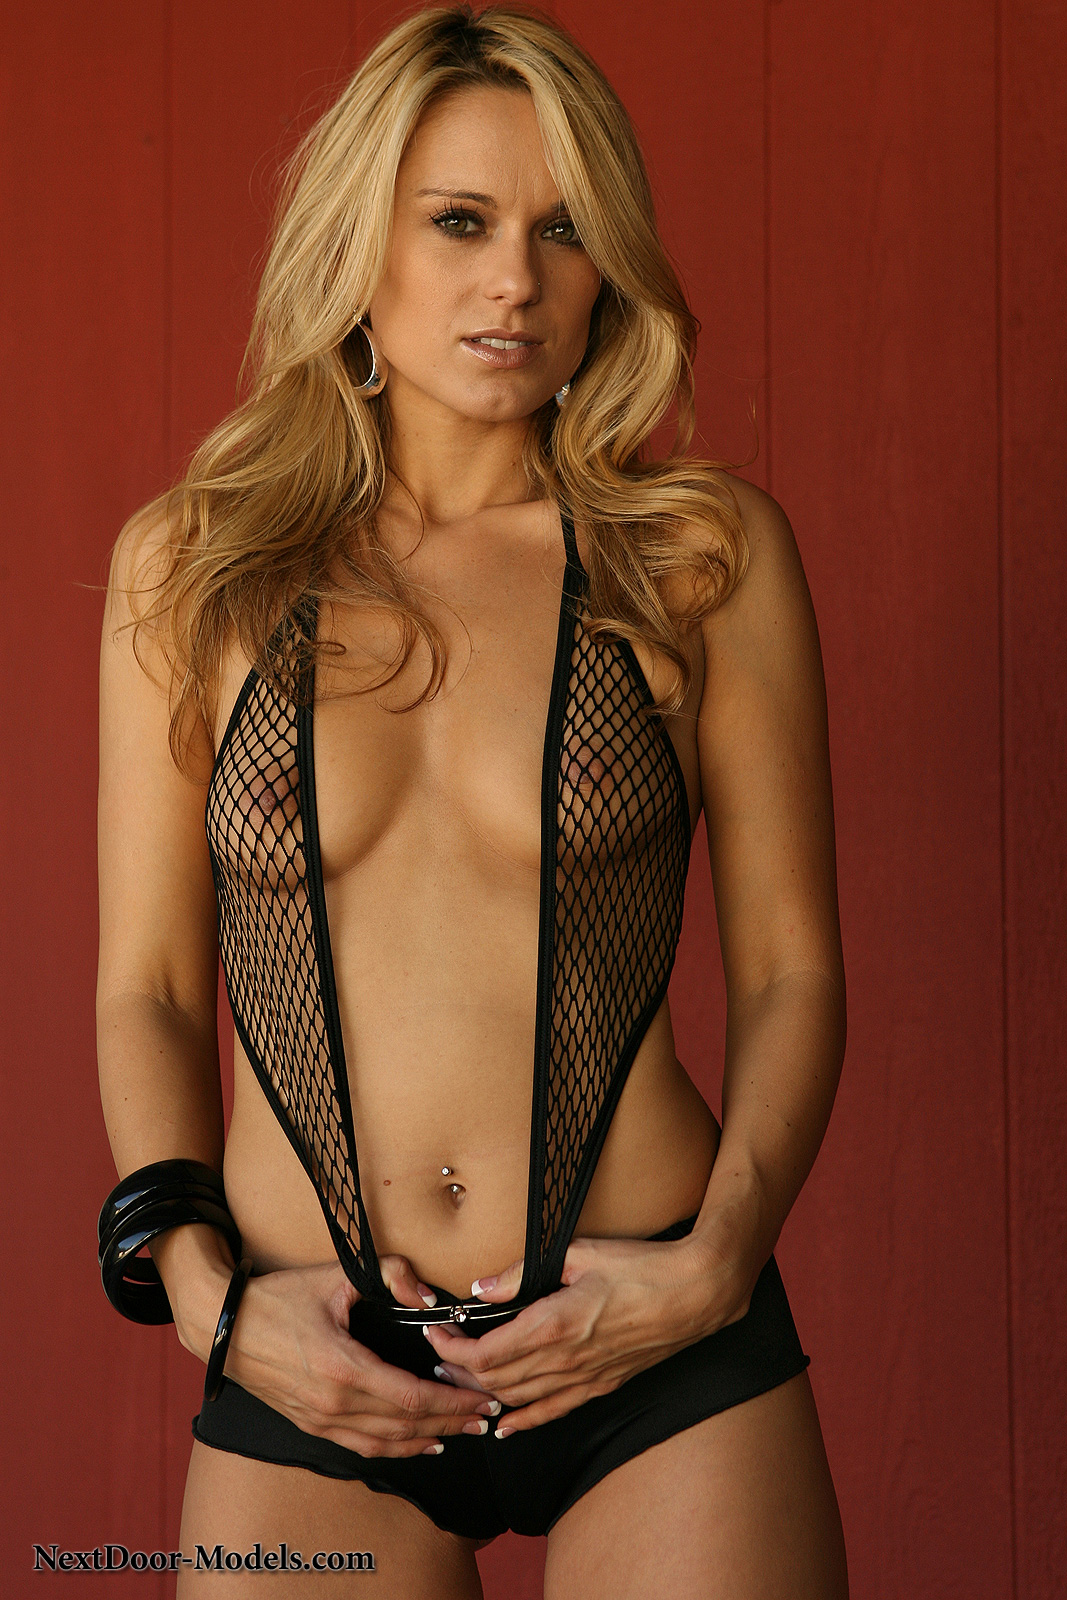 Blonde stripping in fishnet stockings and garter belt 7